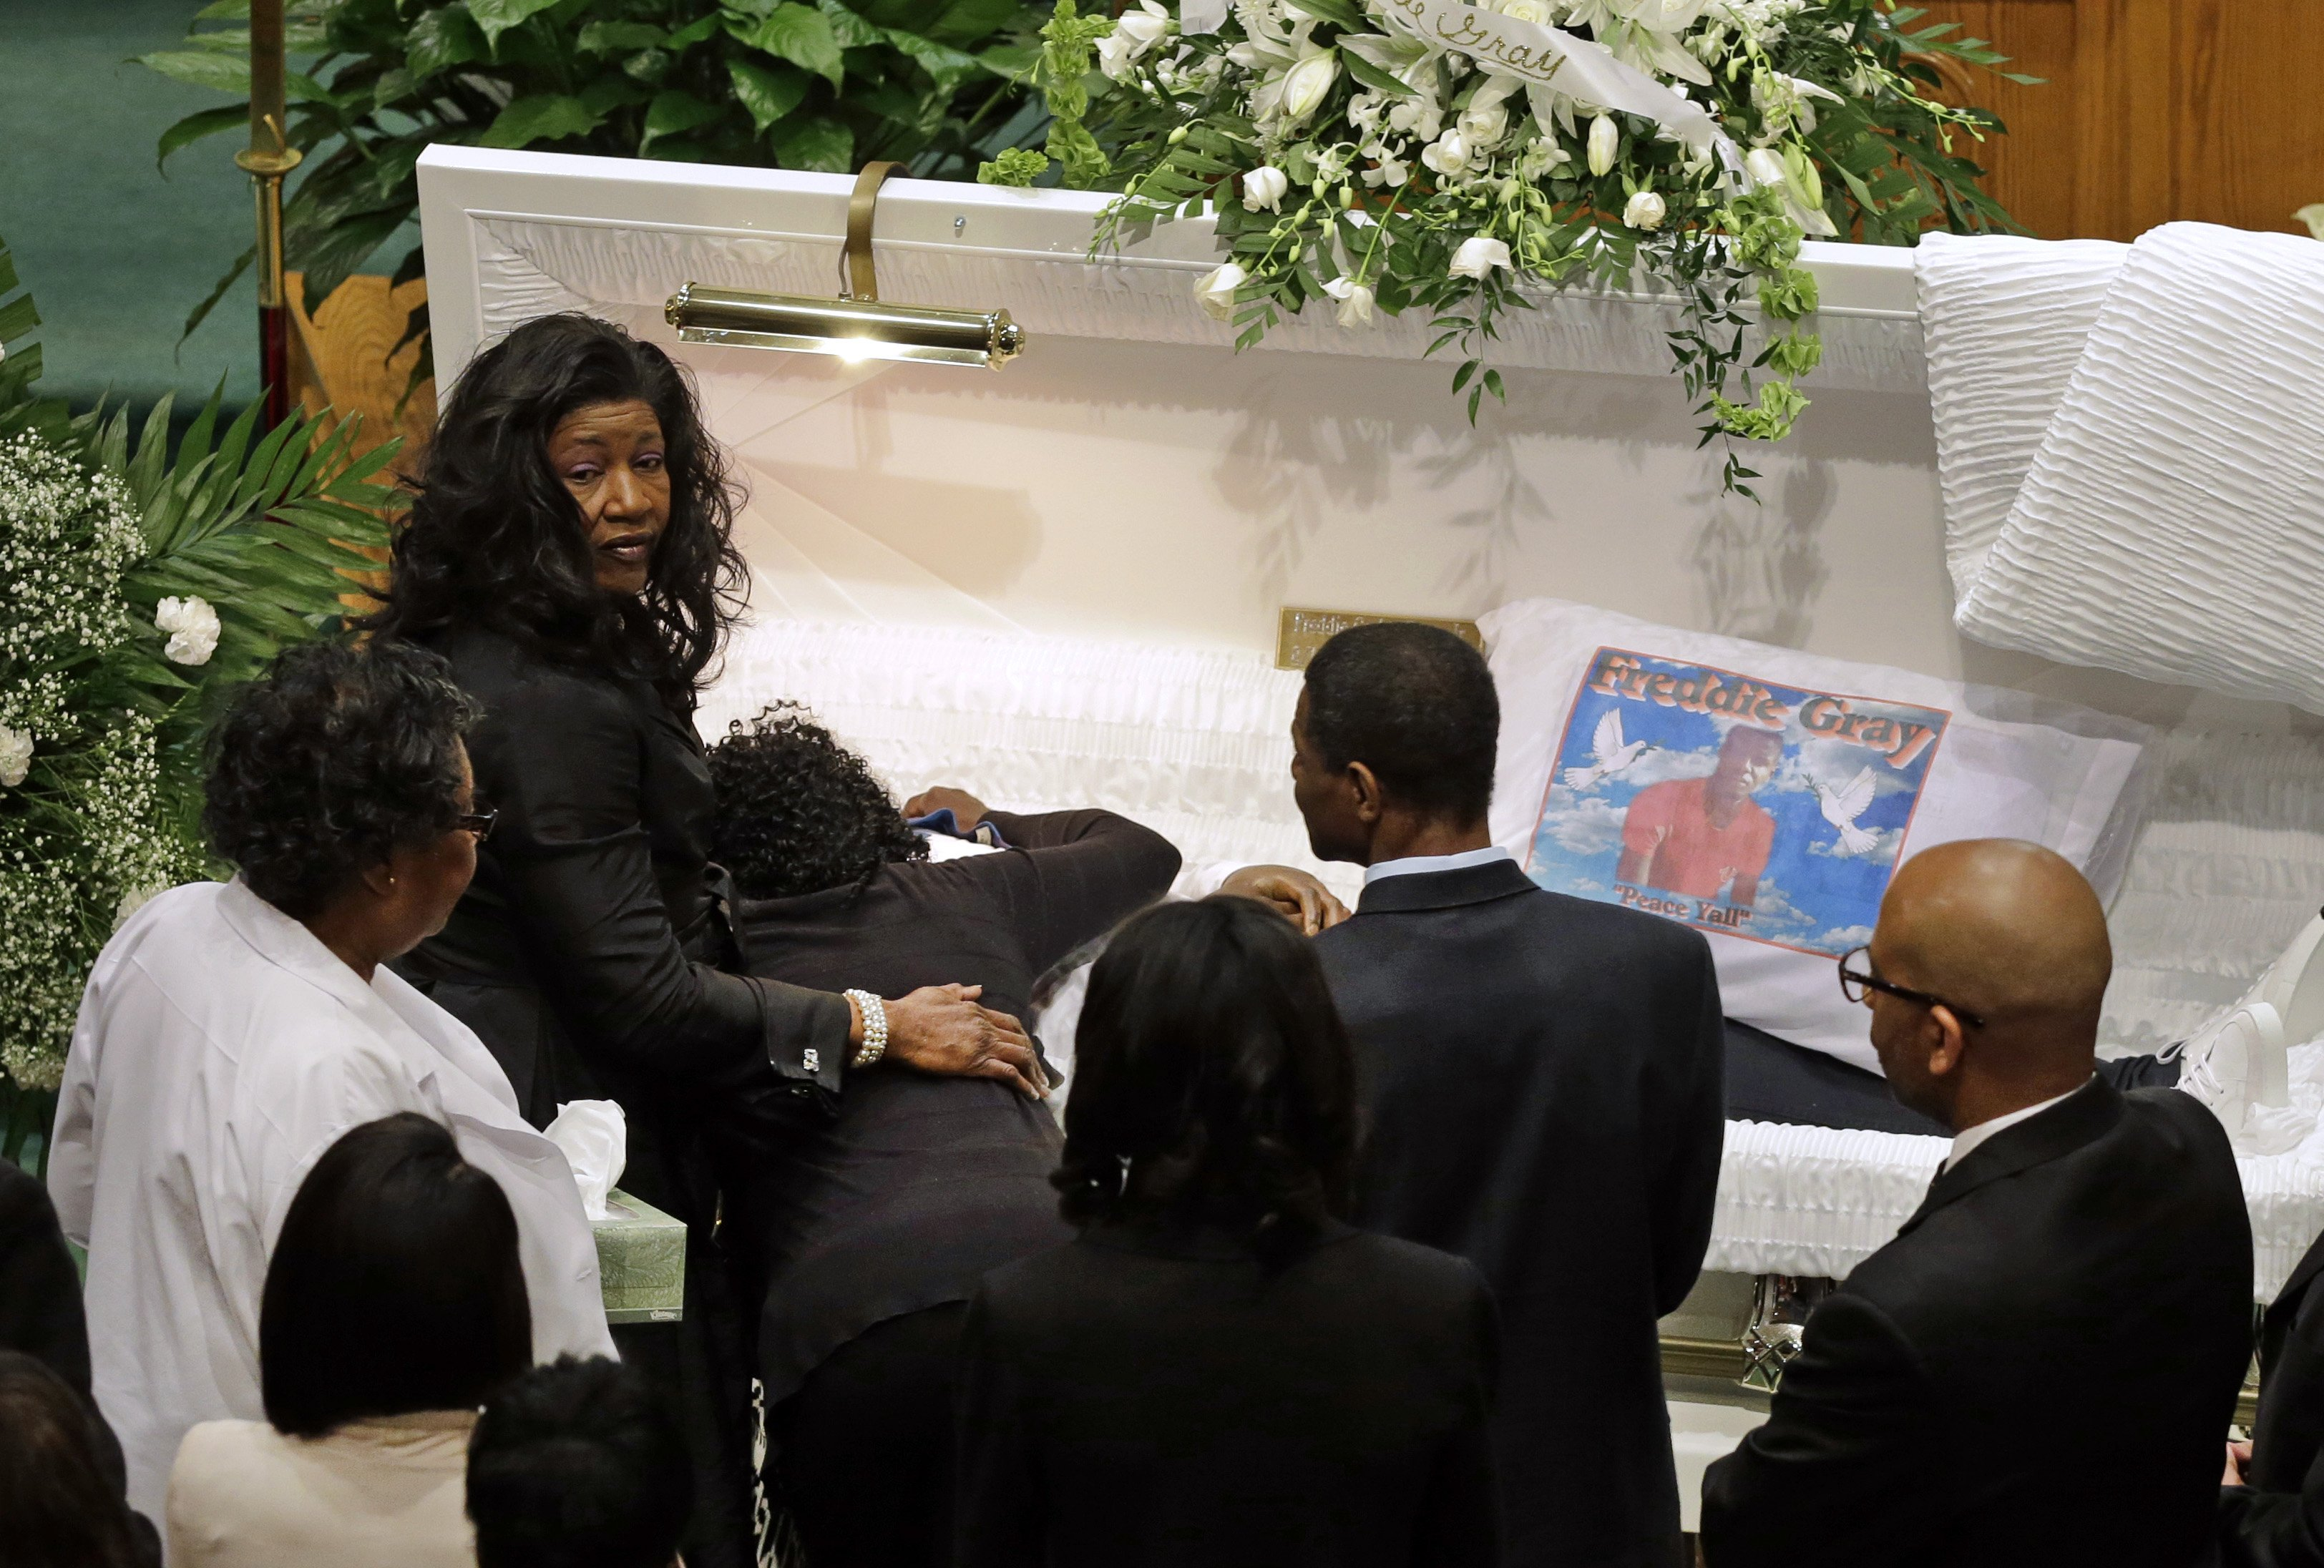 Gloria Darden, mother of Freddie Gray, is comforted as she embraces his body before his funeral at New Shiloh Baptist Church in Baltimore on April 27, 2015.